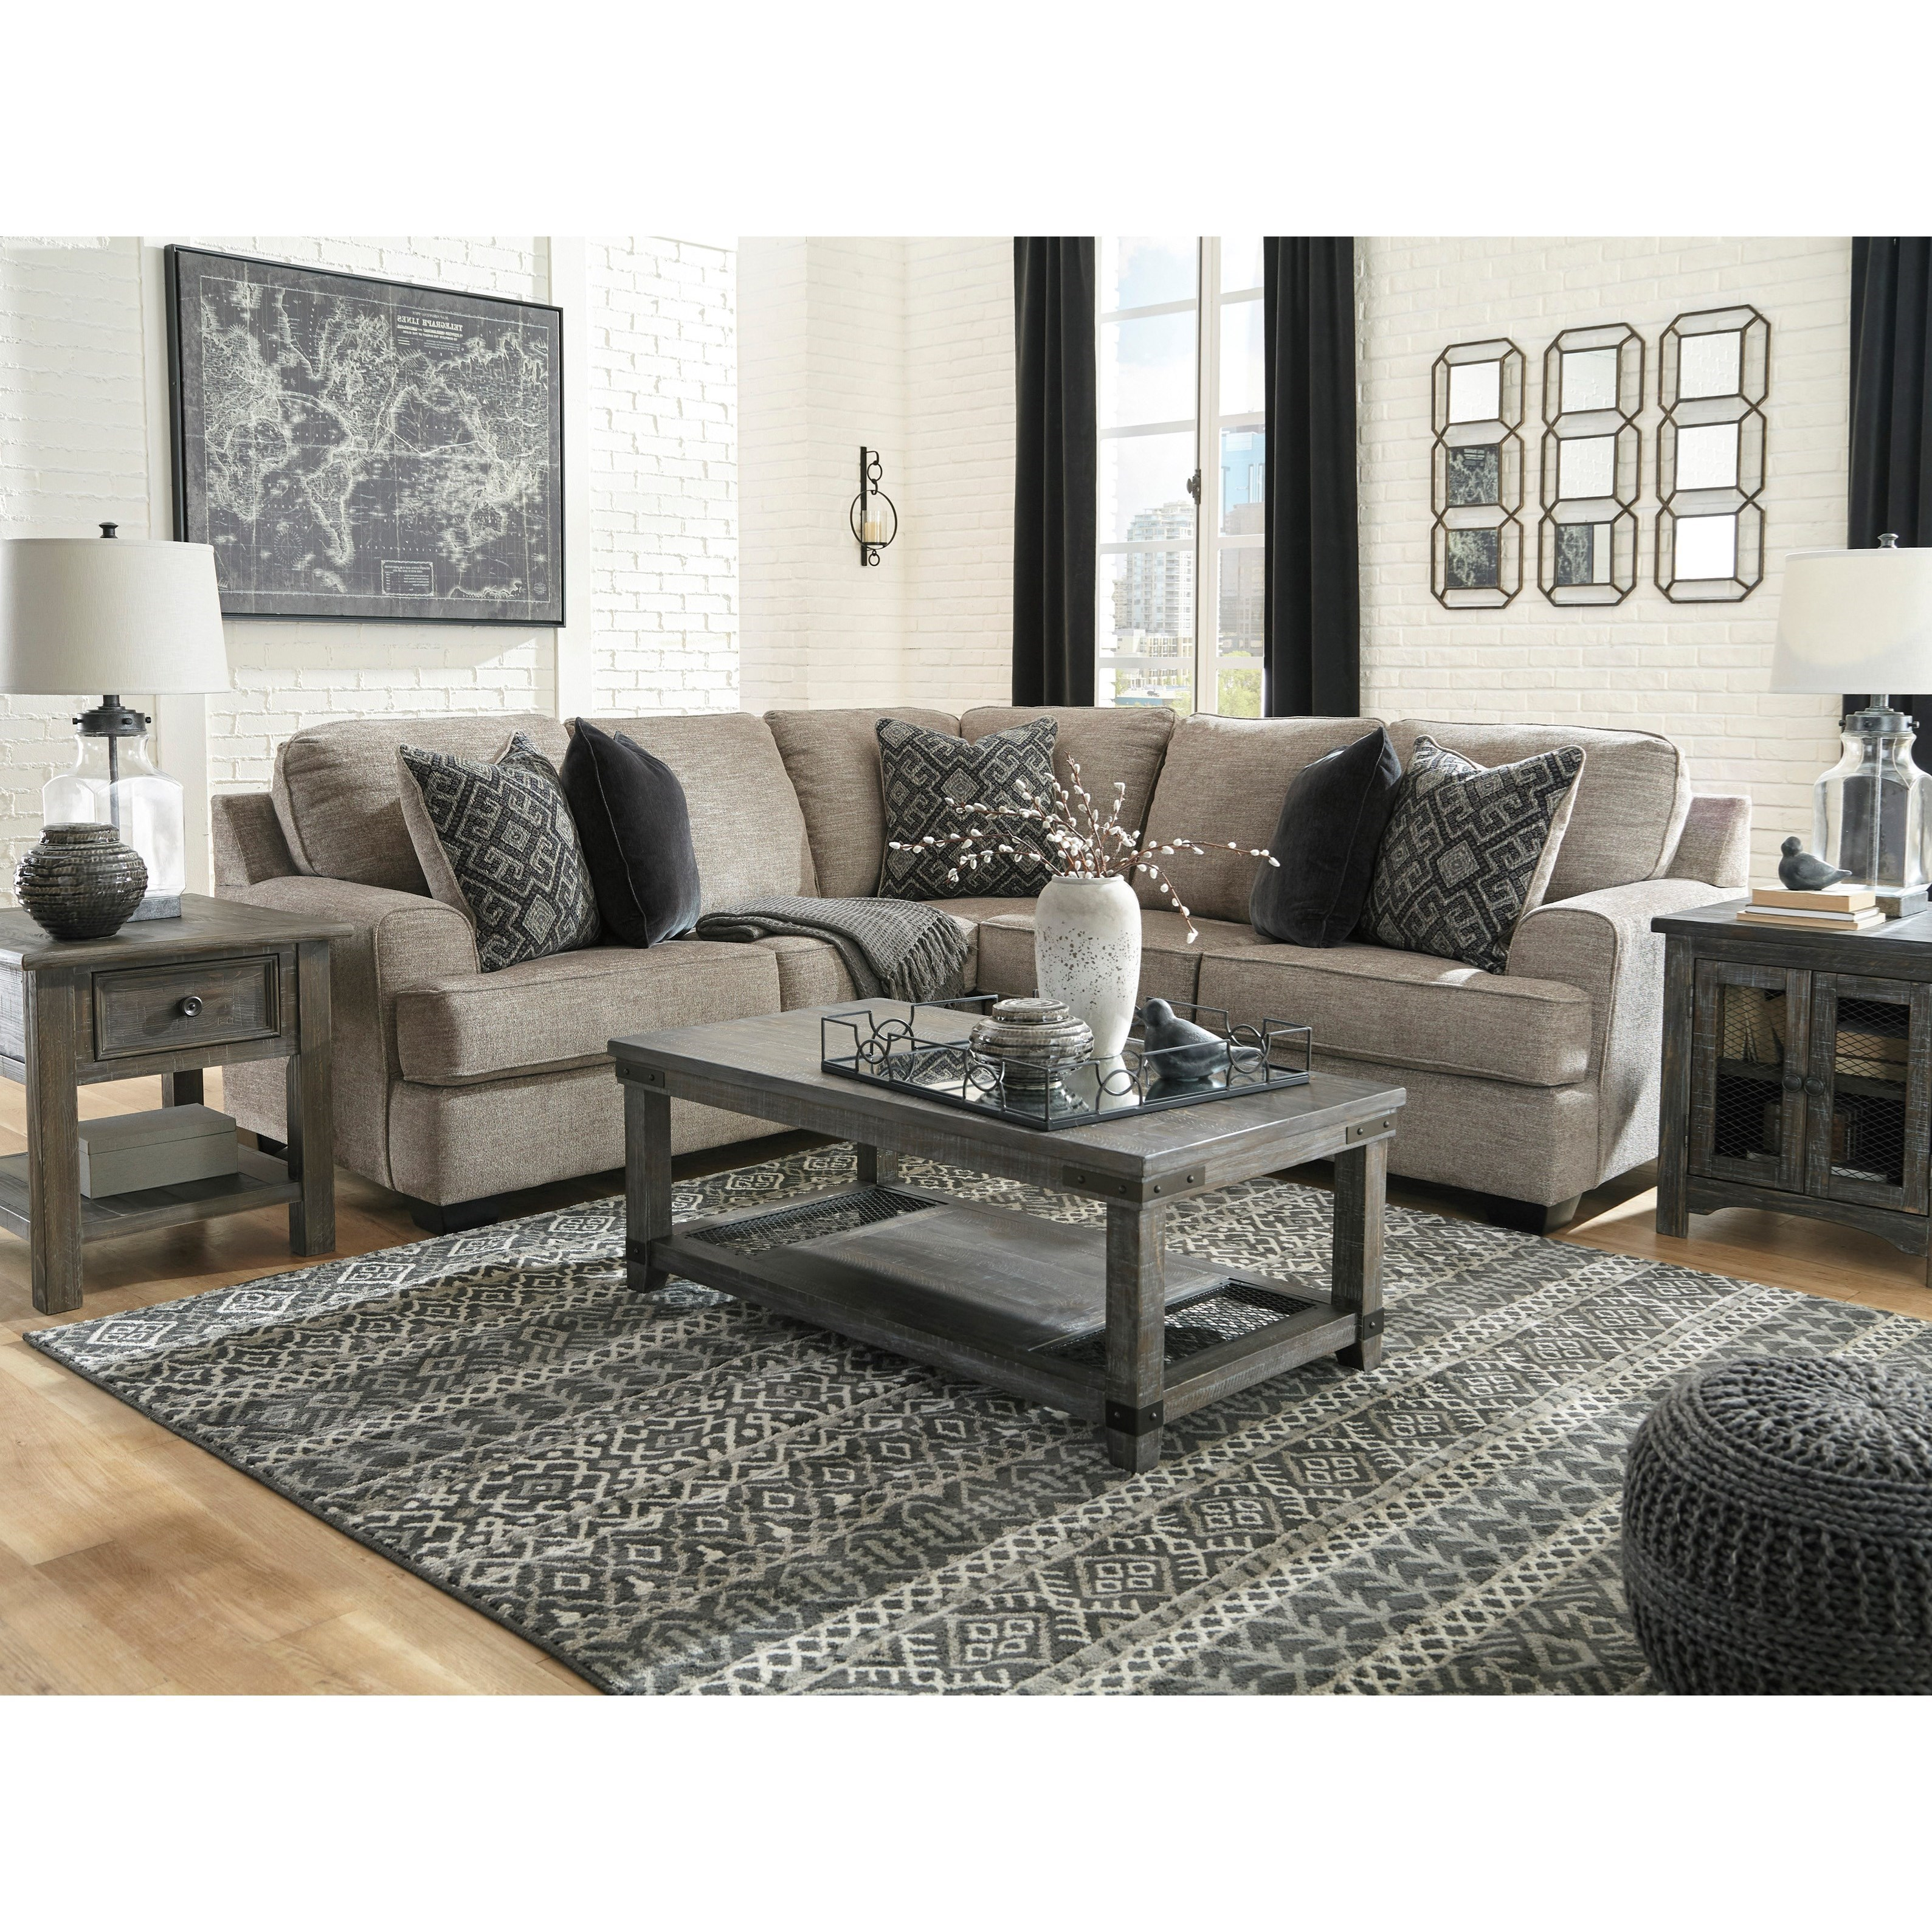 Signature Home Furnishings: Signature Design By Ashley Bovarian 2-Piece Sectional With